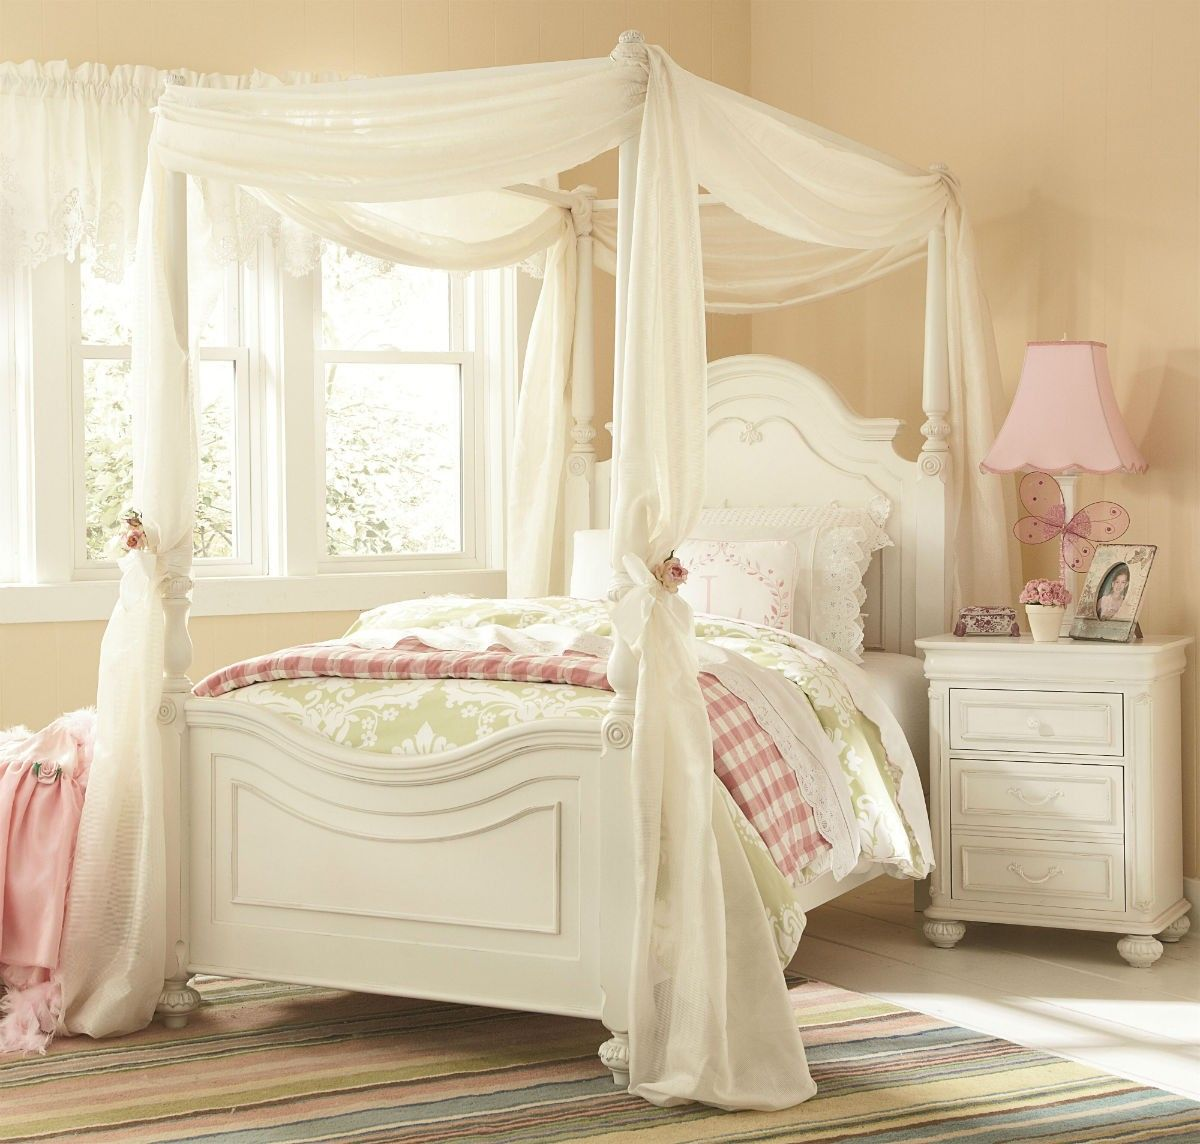 19 Fabulous Canopy Bed Designs For Your Little Princess : girls canopy bedding - memphite.com